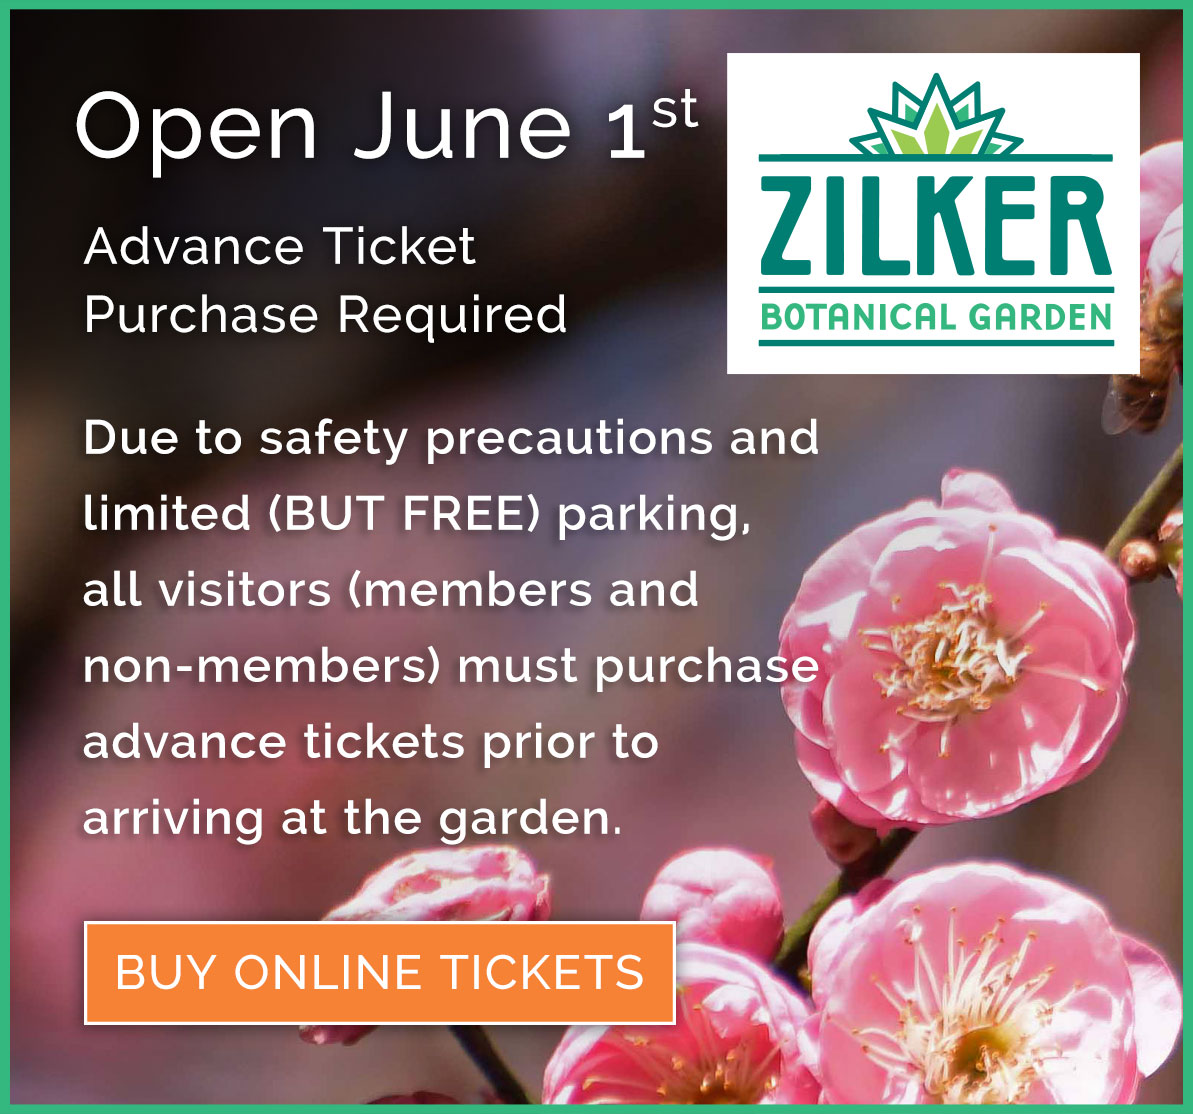 Open June 1st! Advance Ticket Purchase Required. Due to safety precautions and limited (BUT FREE) parking, all visitors (members and non-members) must purchase advance tickets prior to arriving at the garden.